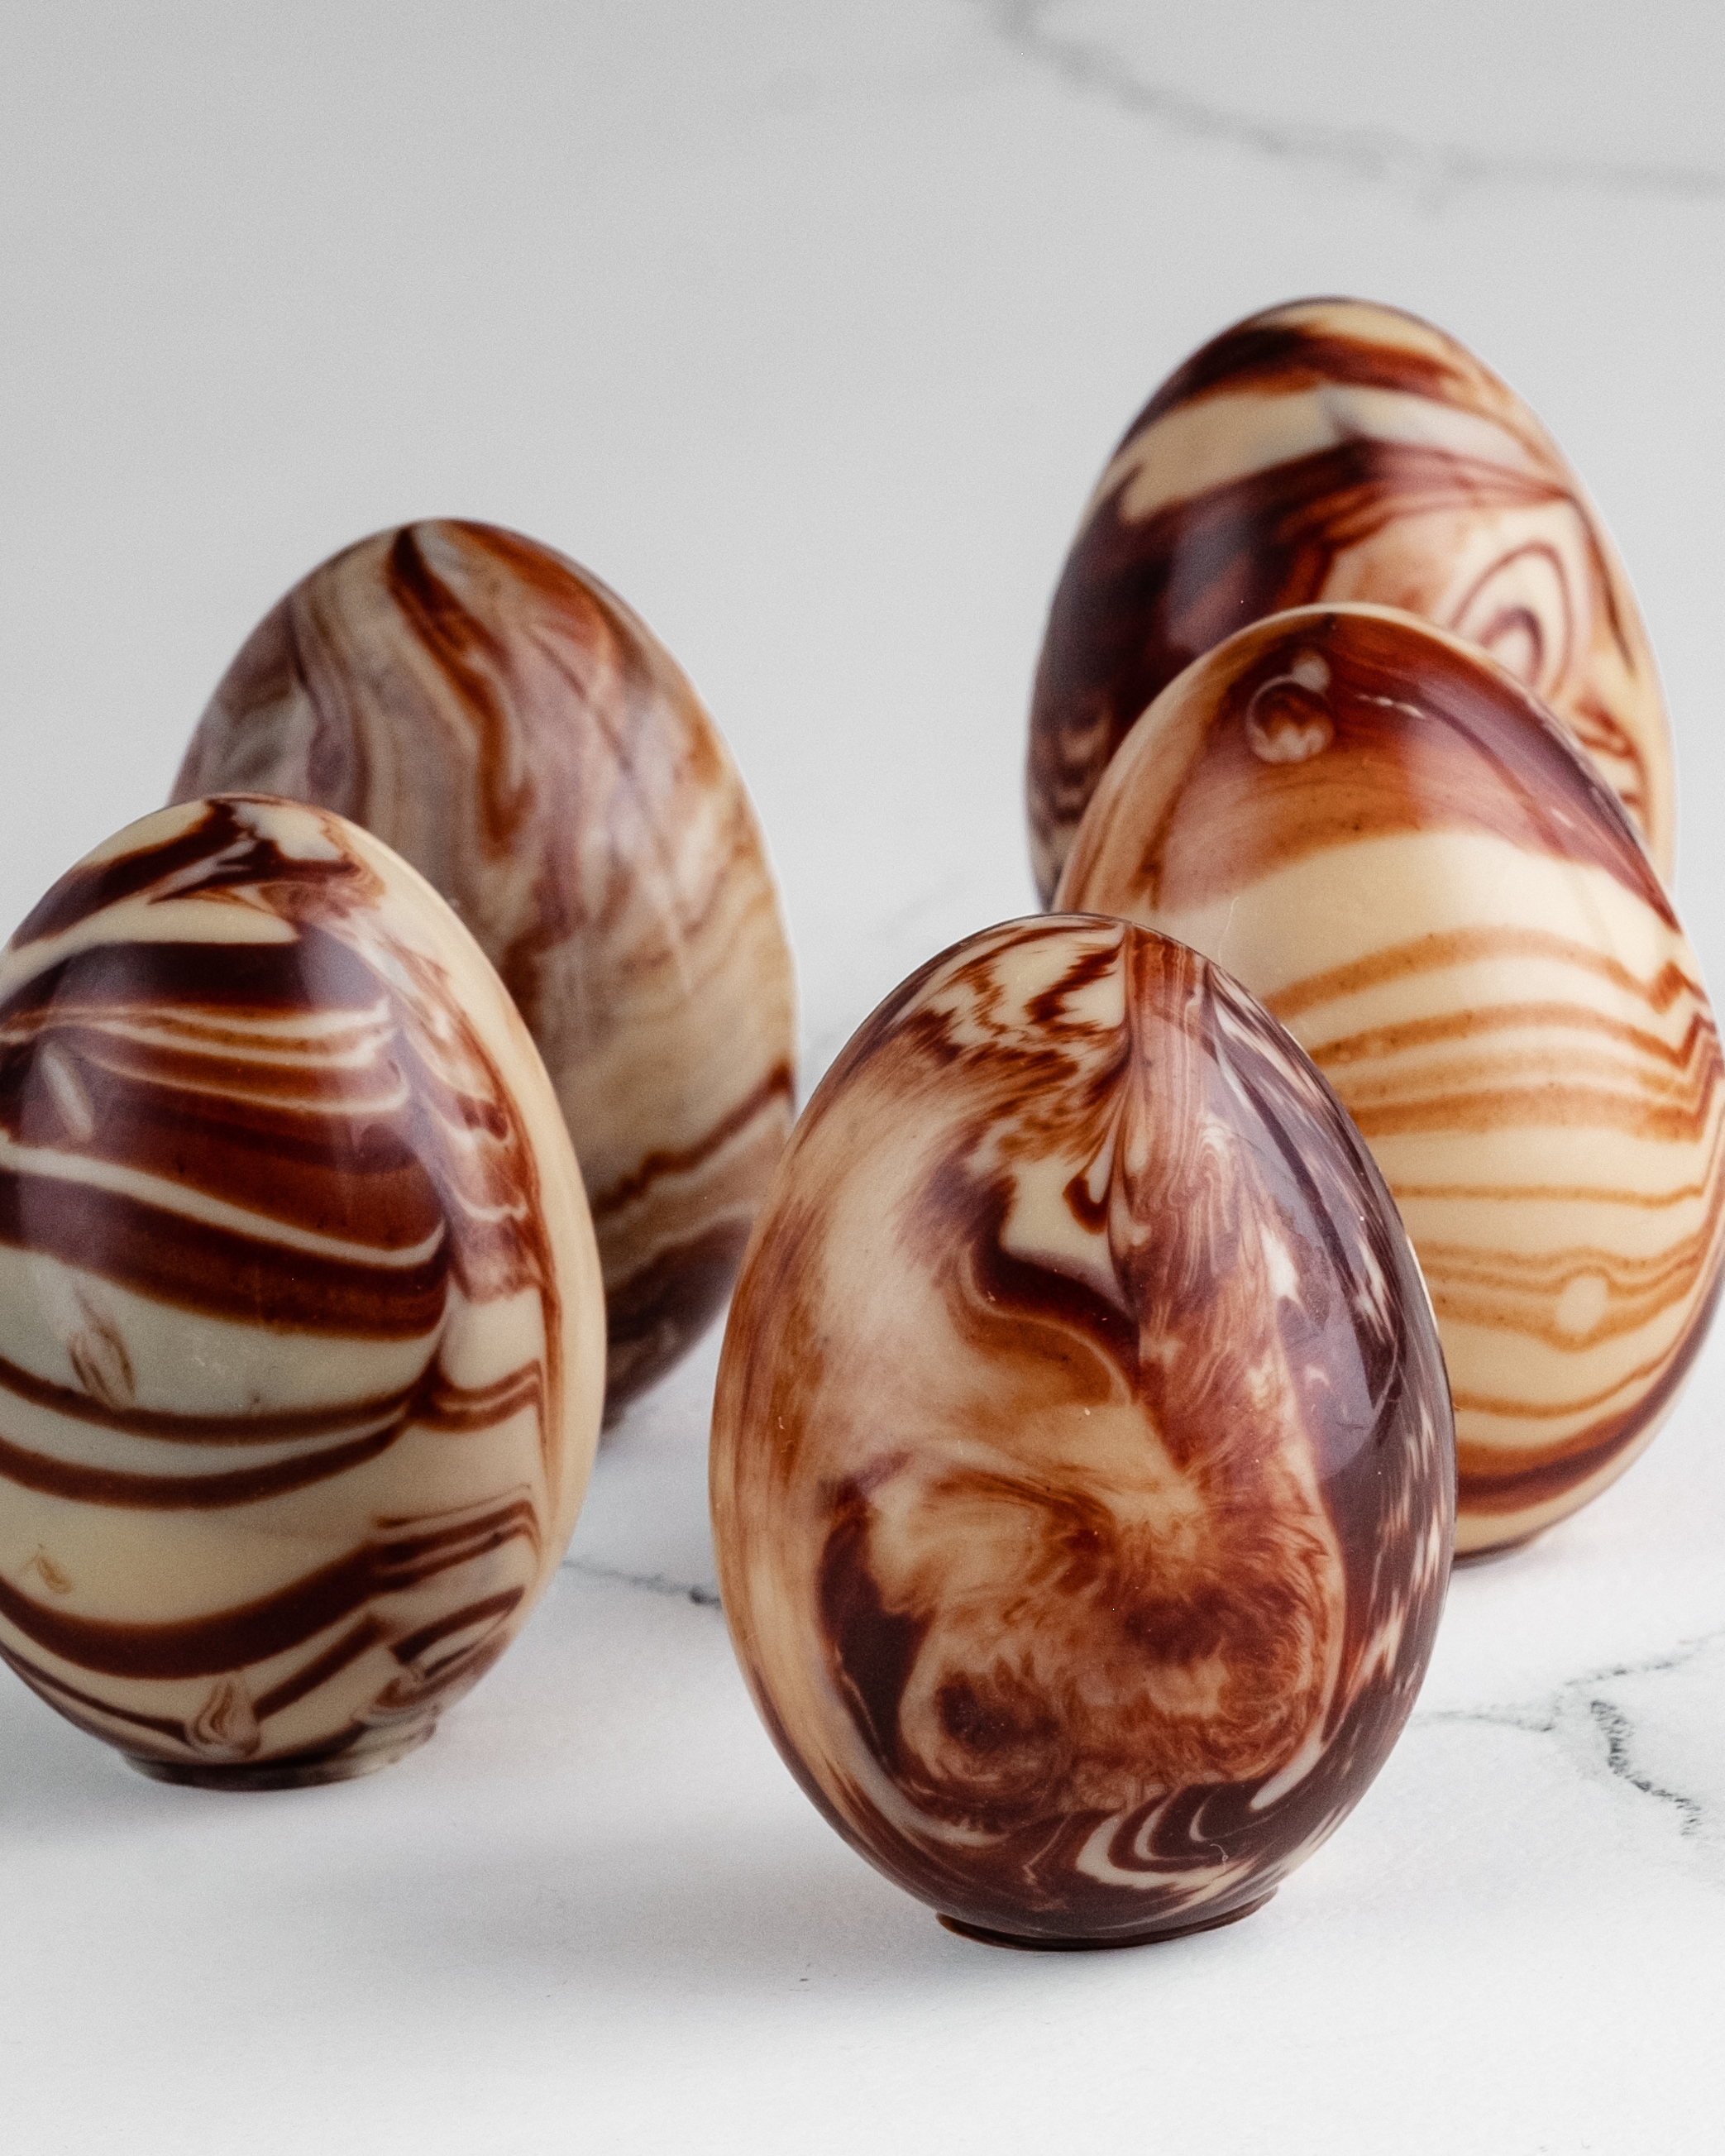 Raw chocolate marbled eggs on a white background